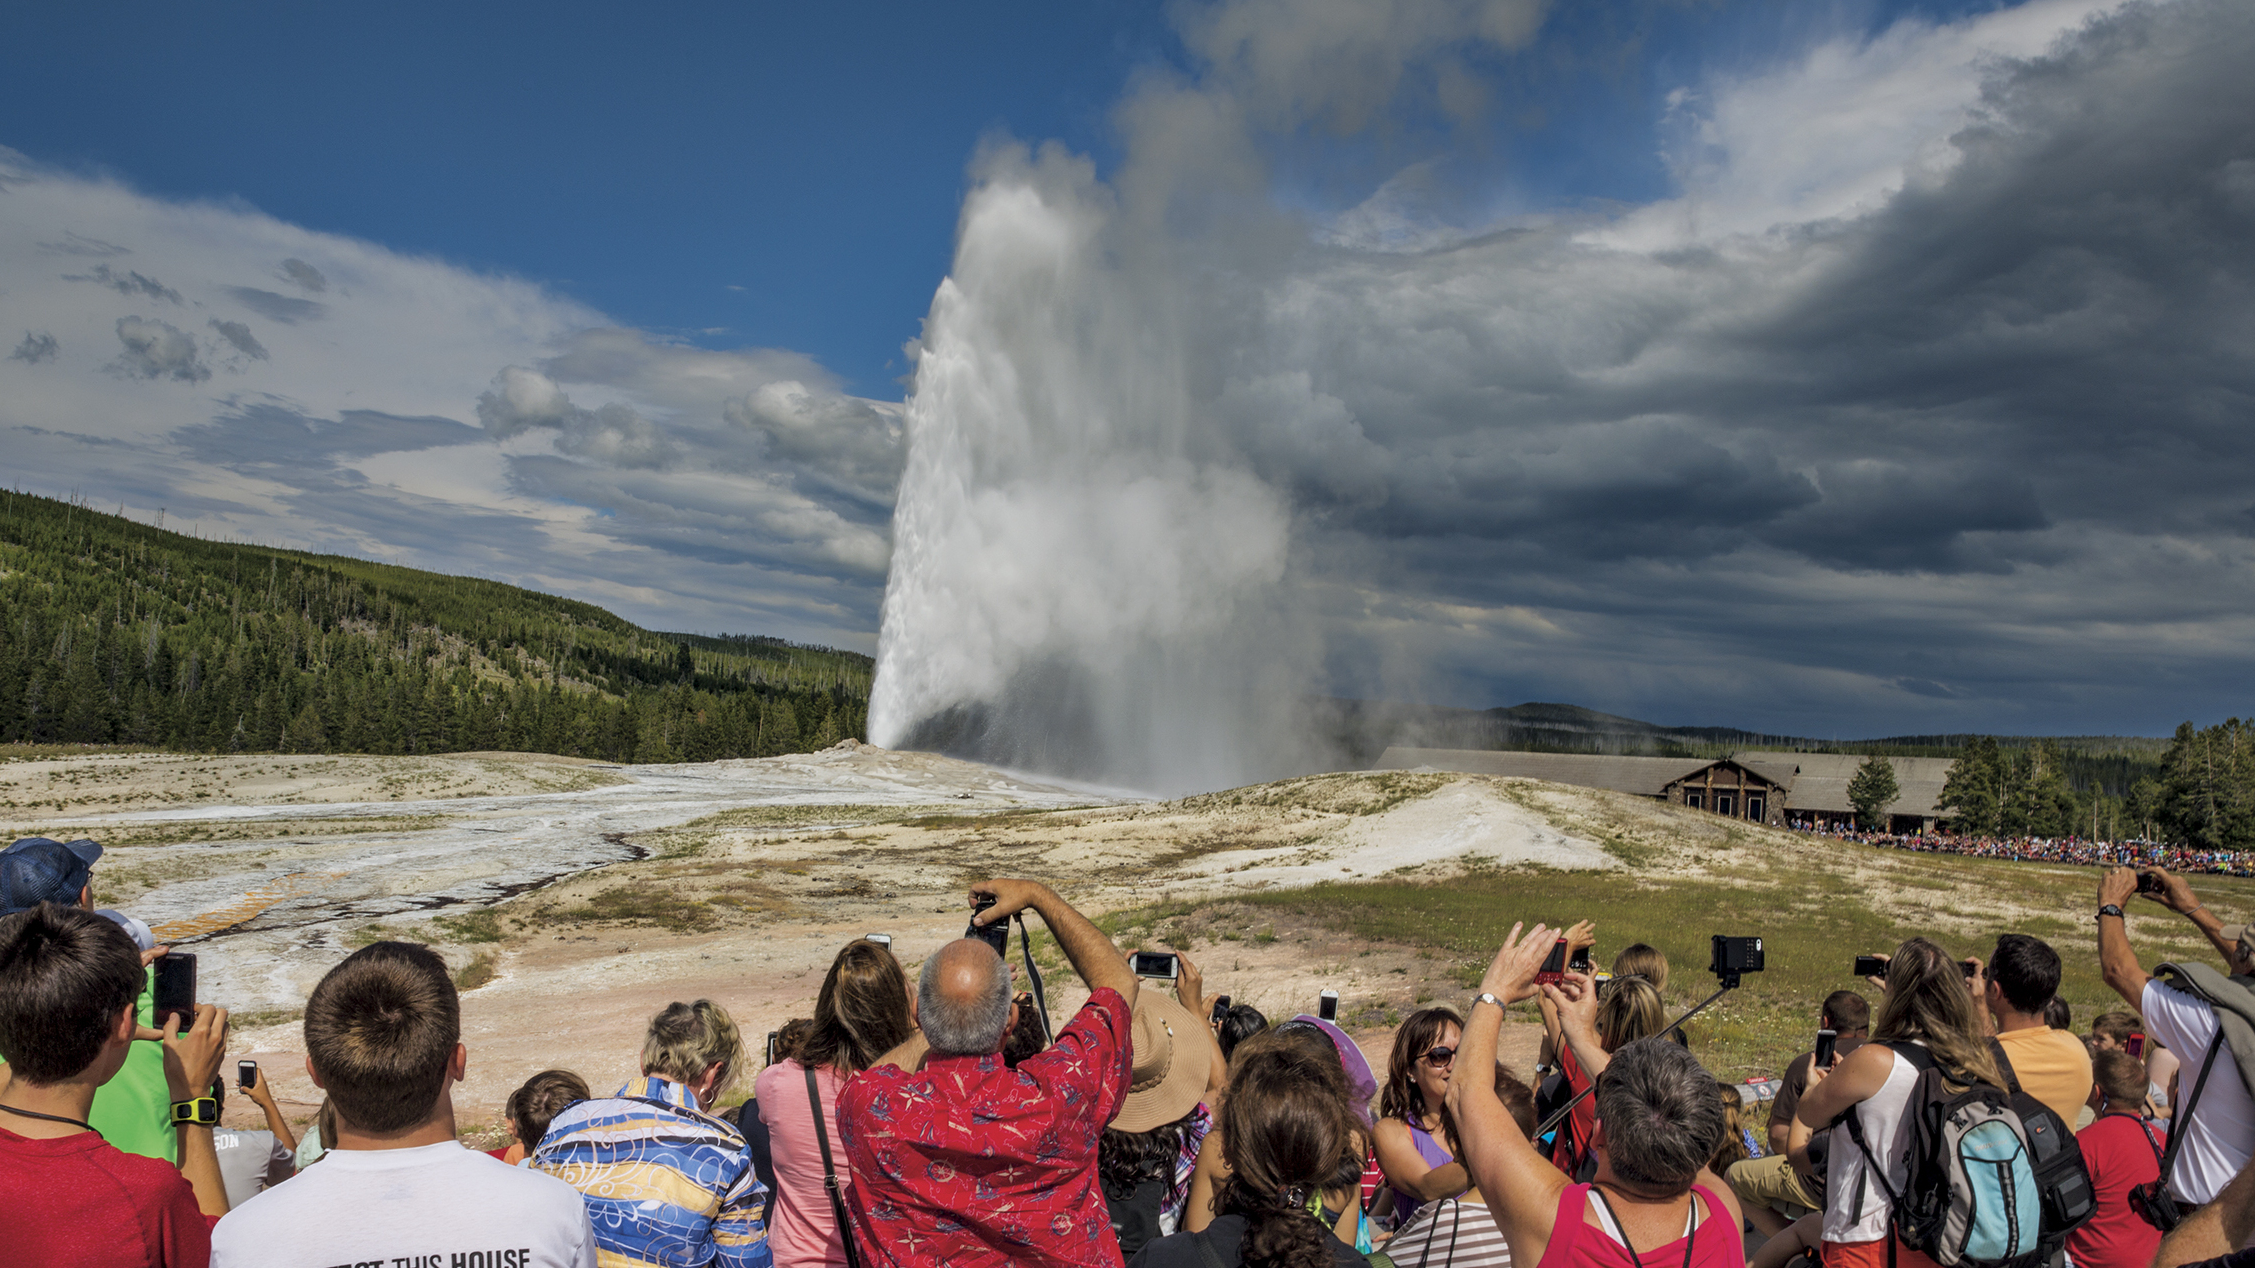 Yellowstone volcano attracts tourists from all over the world